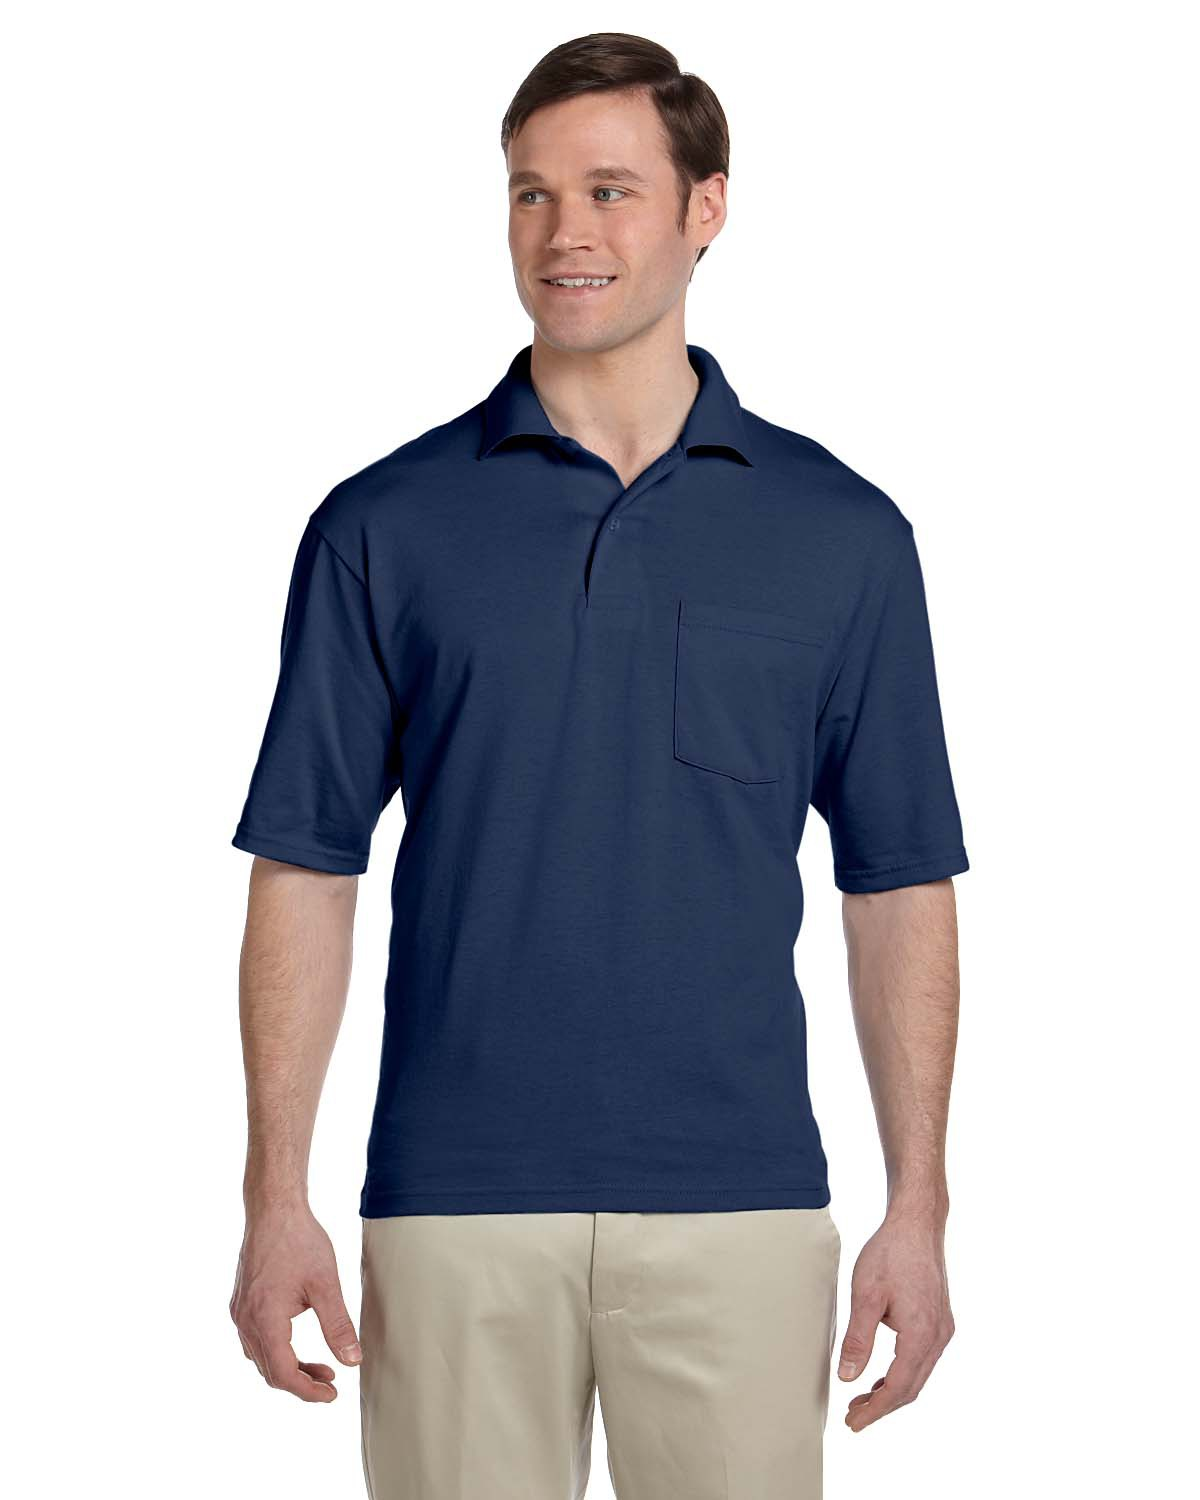 Jerzees 436P 5.6 oz., 50/50 Jersey Pocket Polo with SpotShield